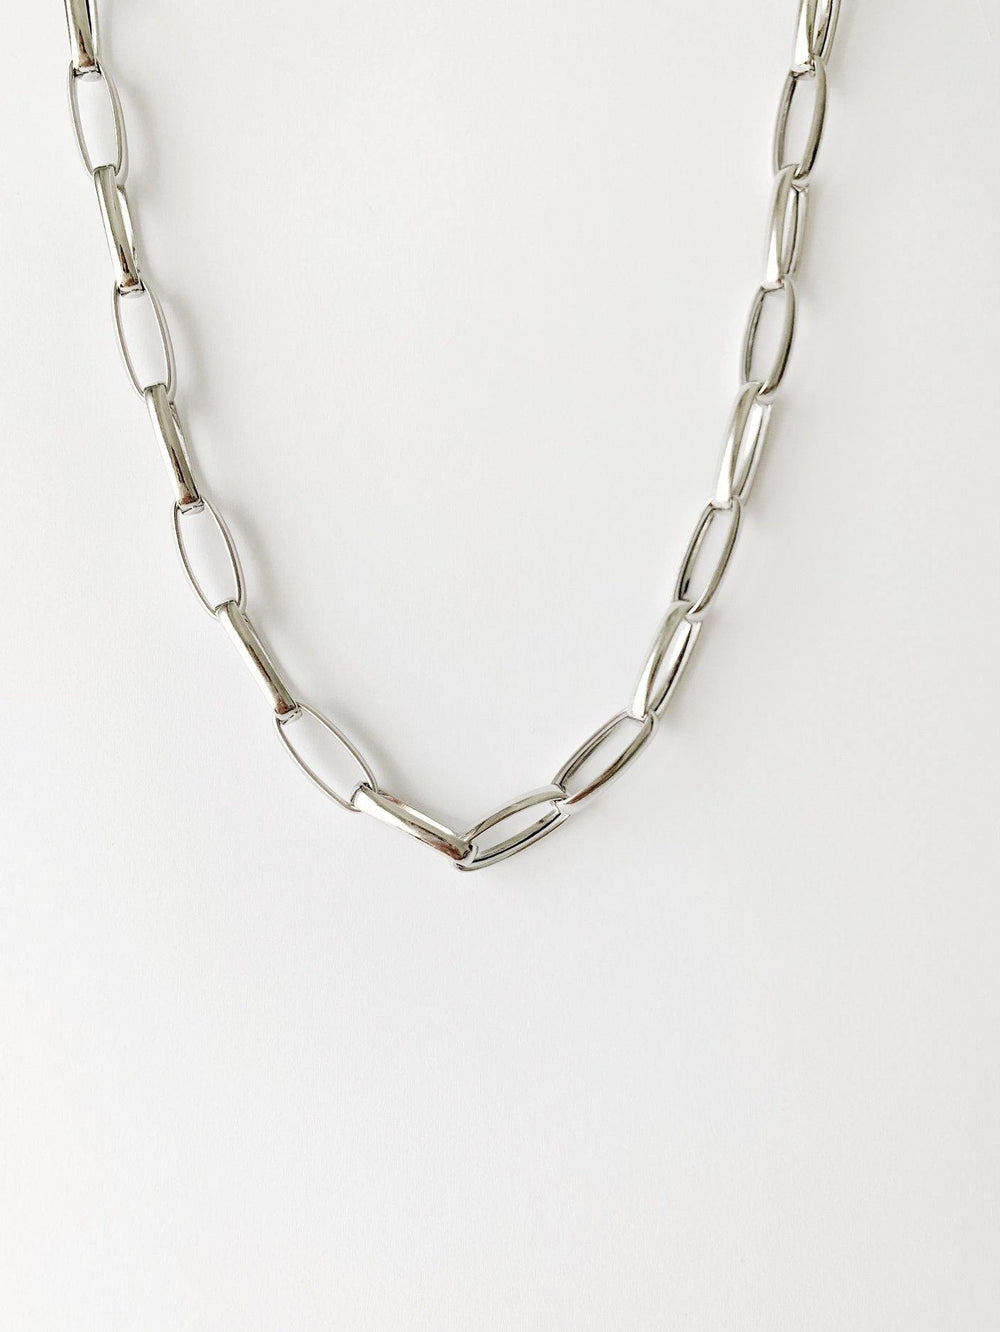 Carla Silver Necklace - Amillis